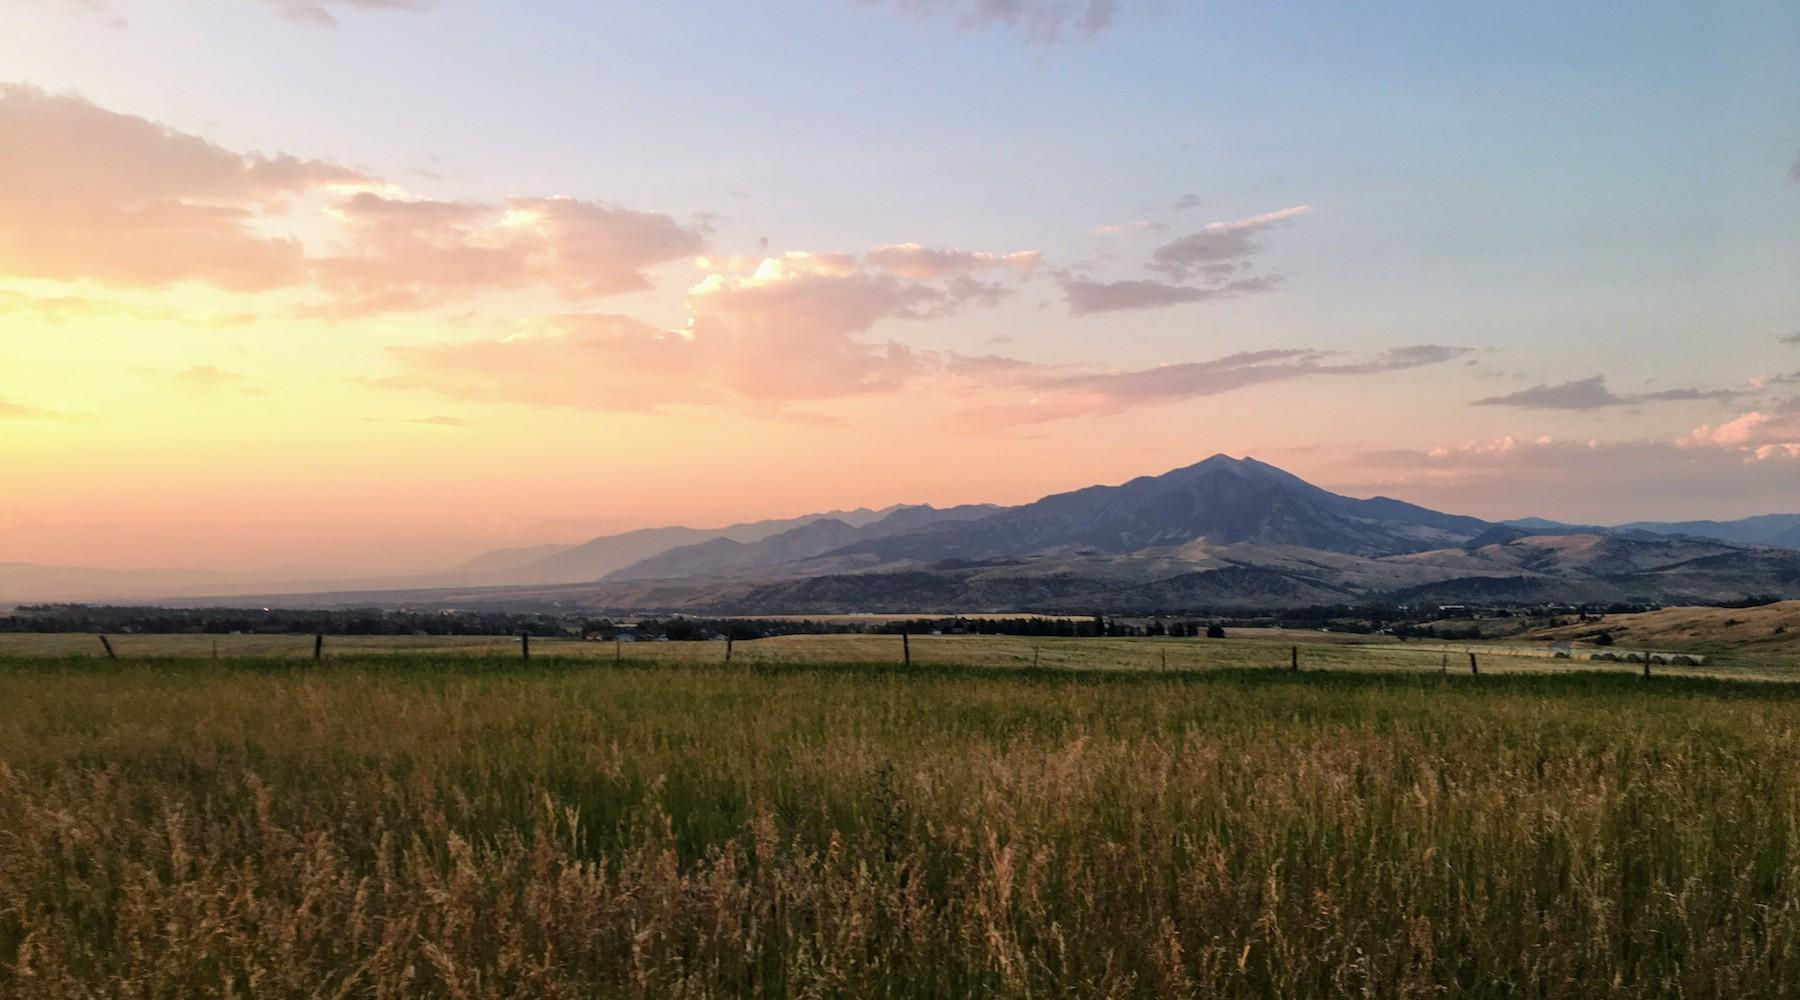 Sunset over the Bridger Mountains